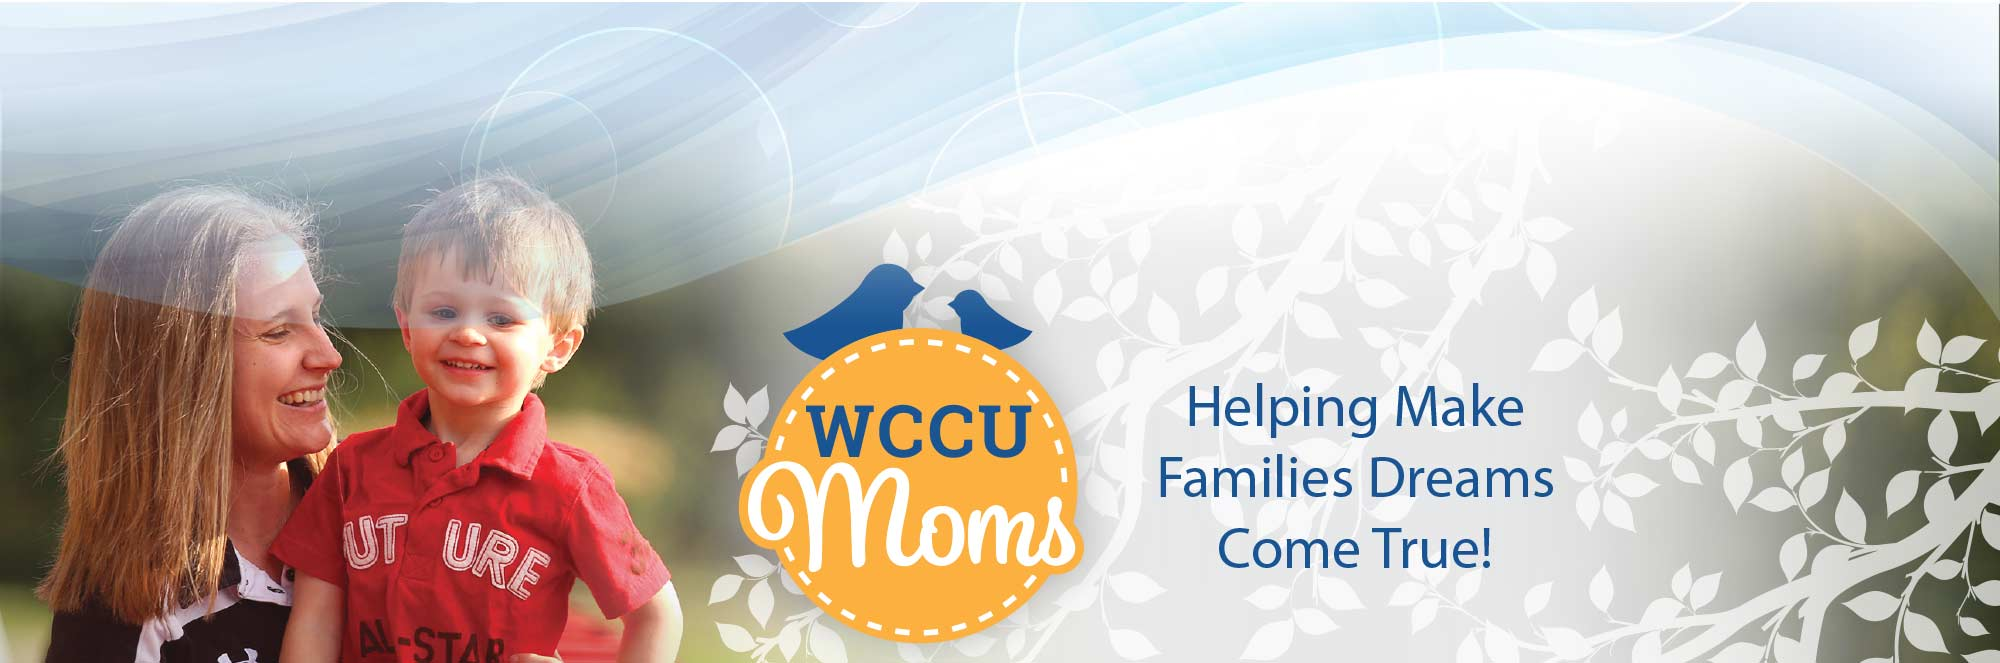 WCCU Moms. Helping Make Families Dreams Come True!